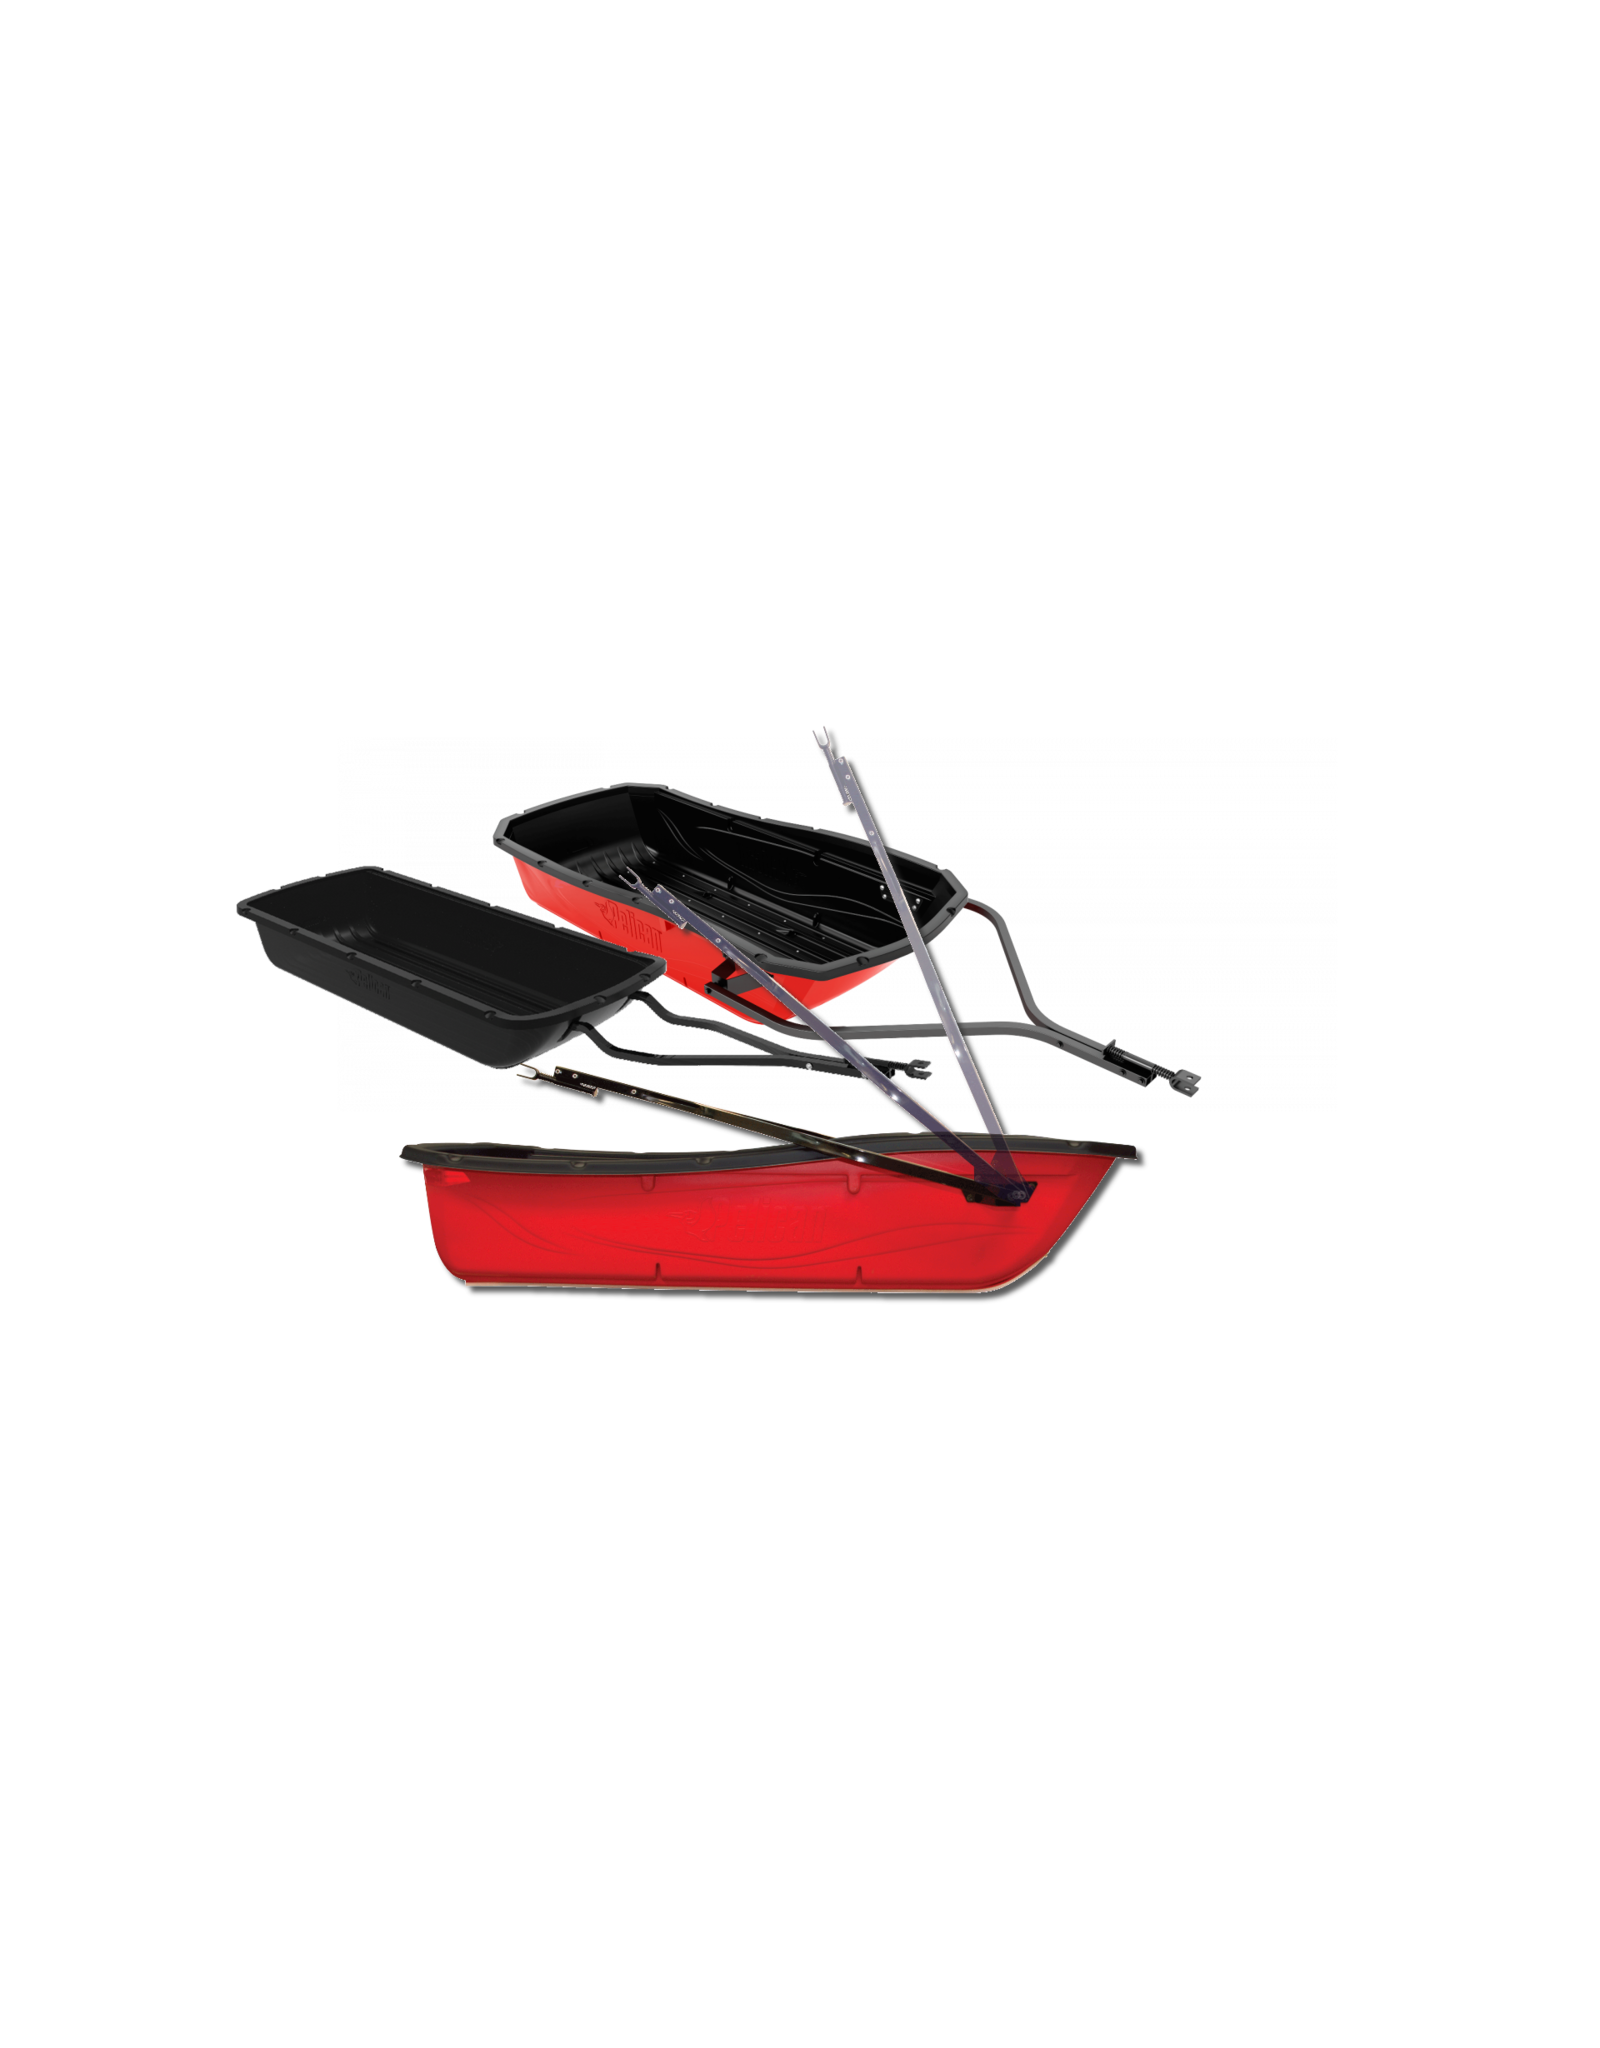 Pelican Pelican Acc. Tow Hitch for Trek Utility Sleds